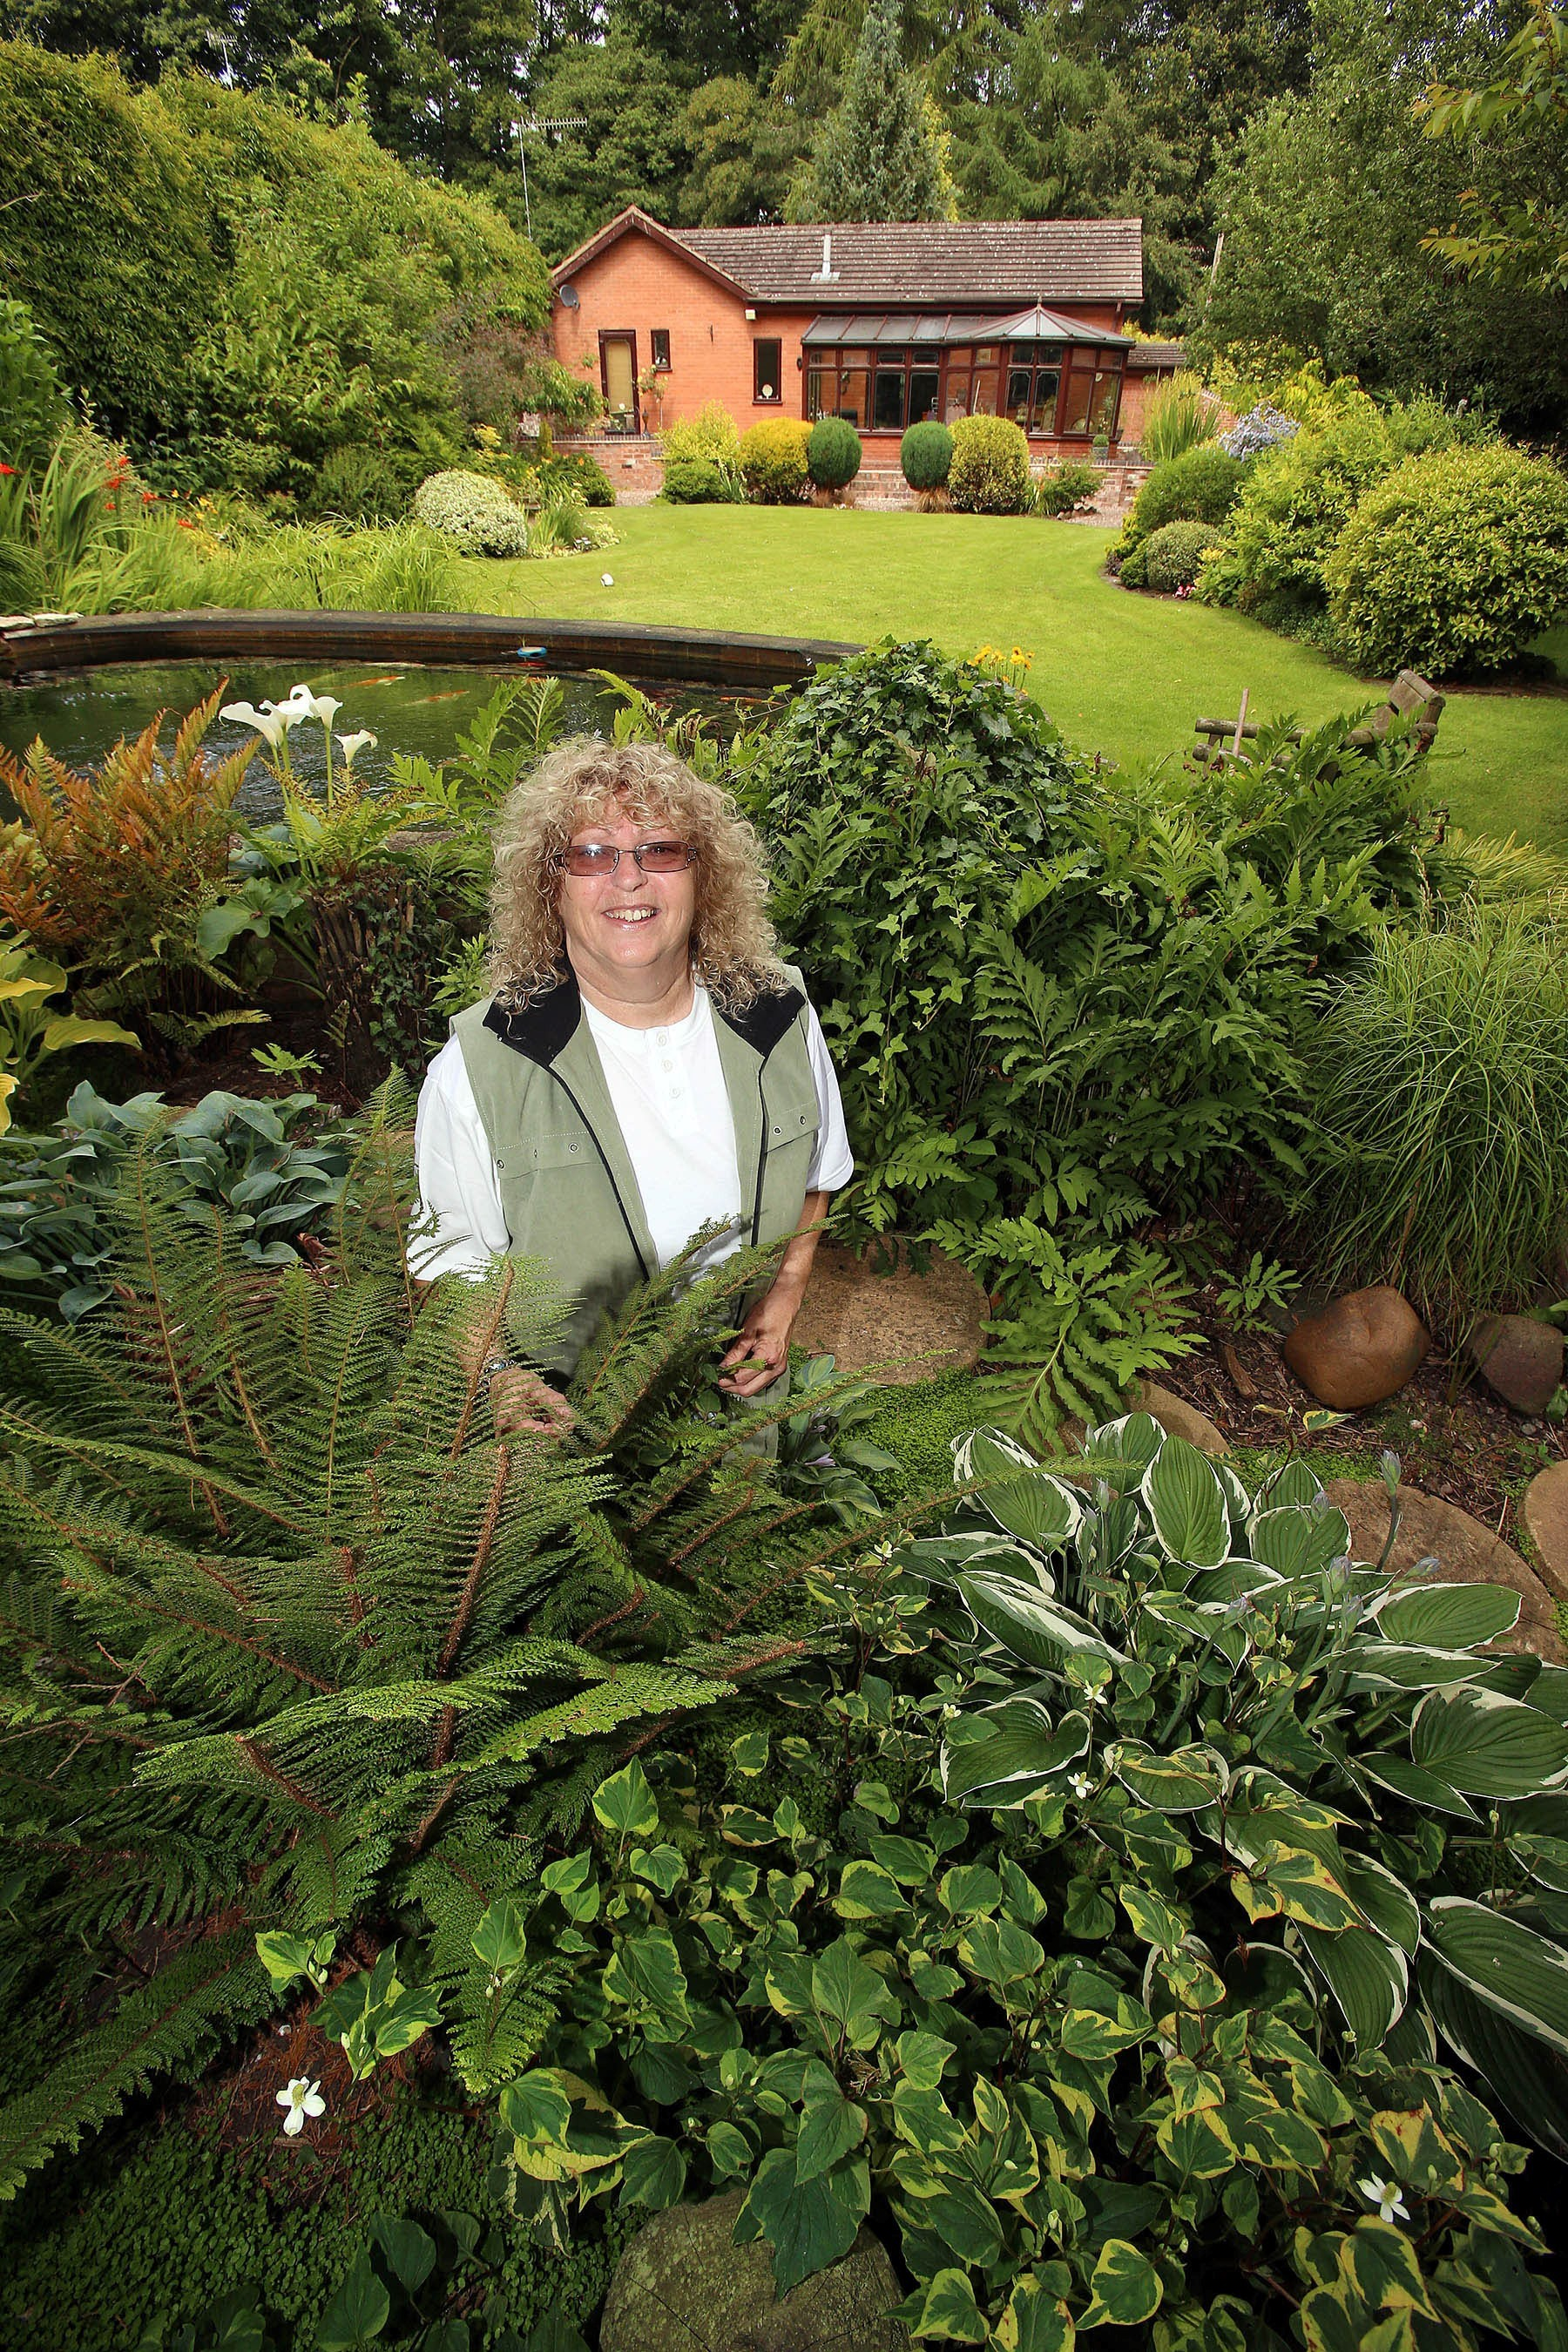 Prestwood garden to open to the public this weekend